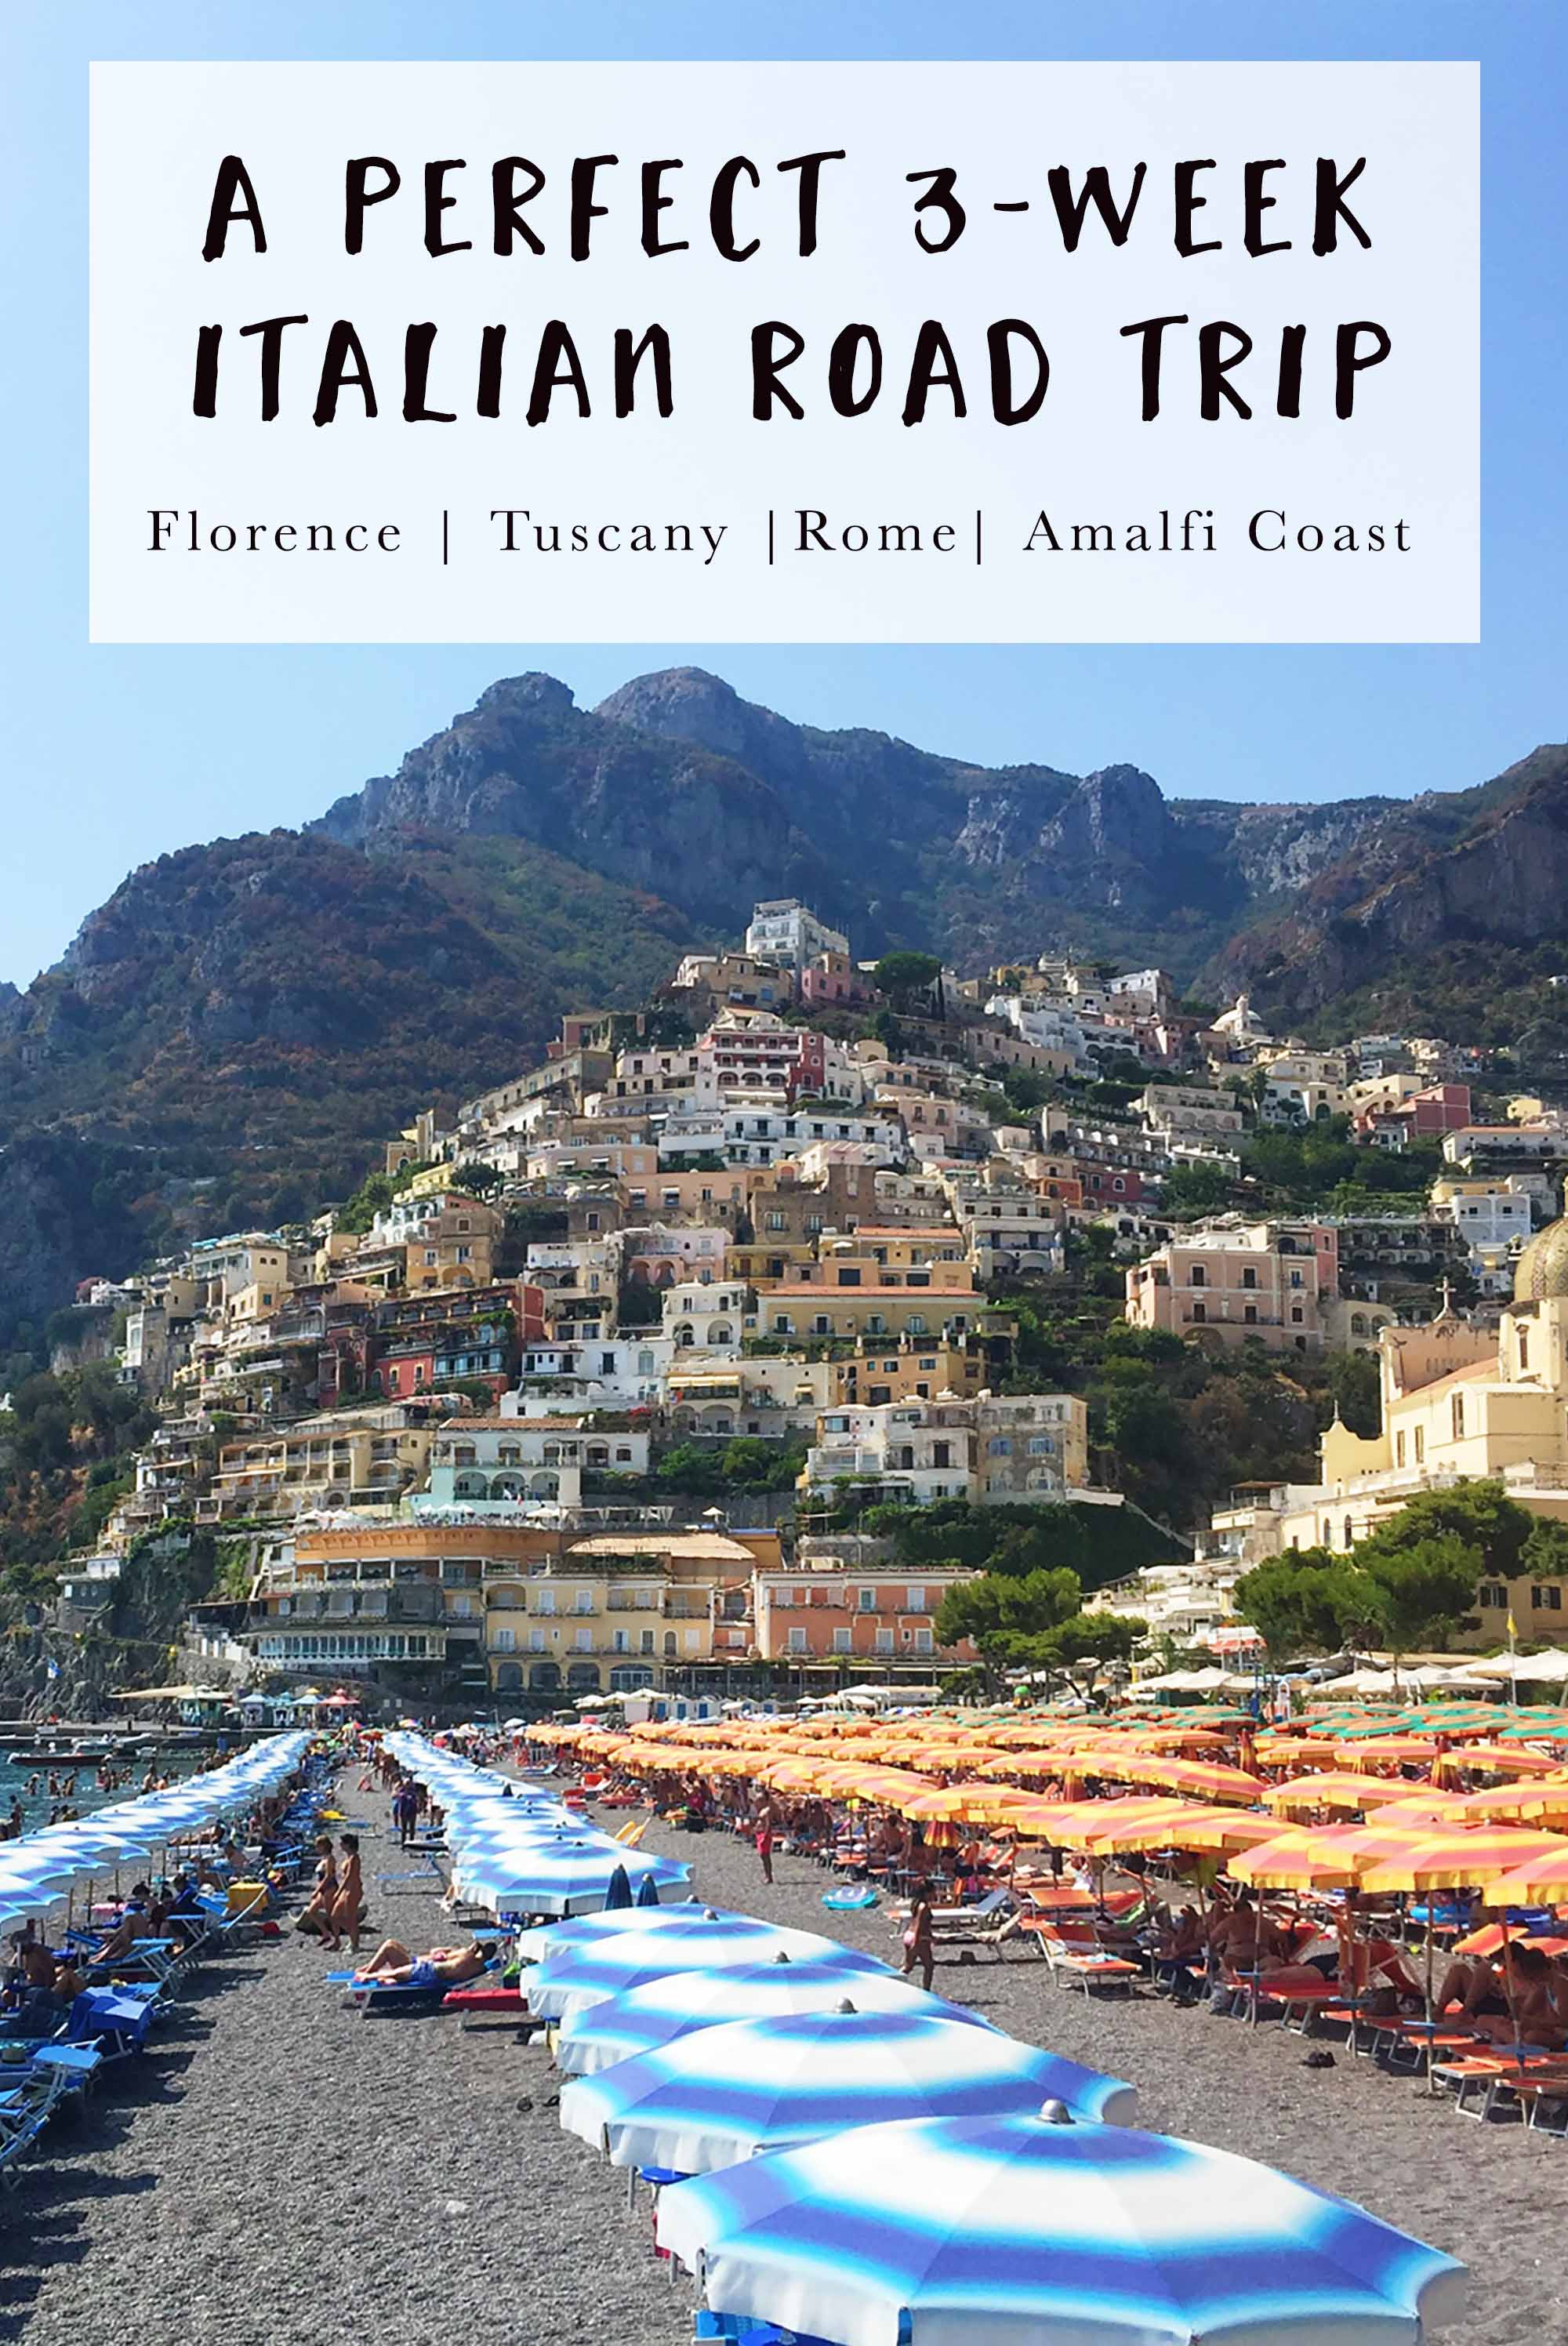 A Perfect Italian Road Trip – Florence, Tuscany, Rome and the Amalfi Coast